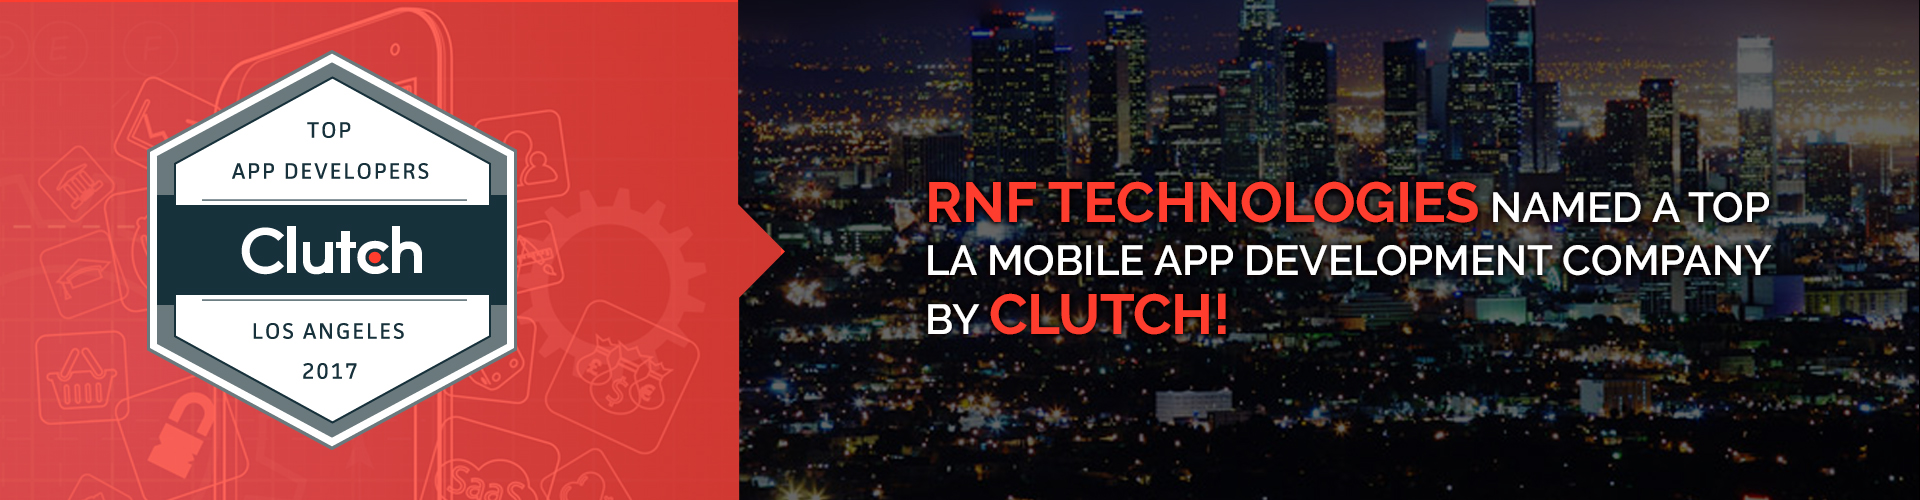 RNF Technologies Named a Top LA Mobile App Development Company by Clutch!